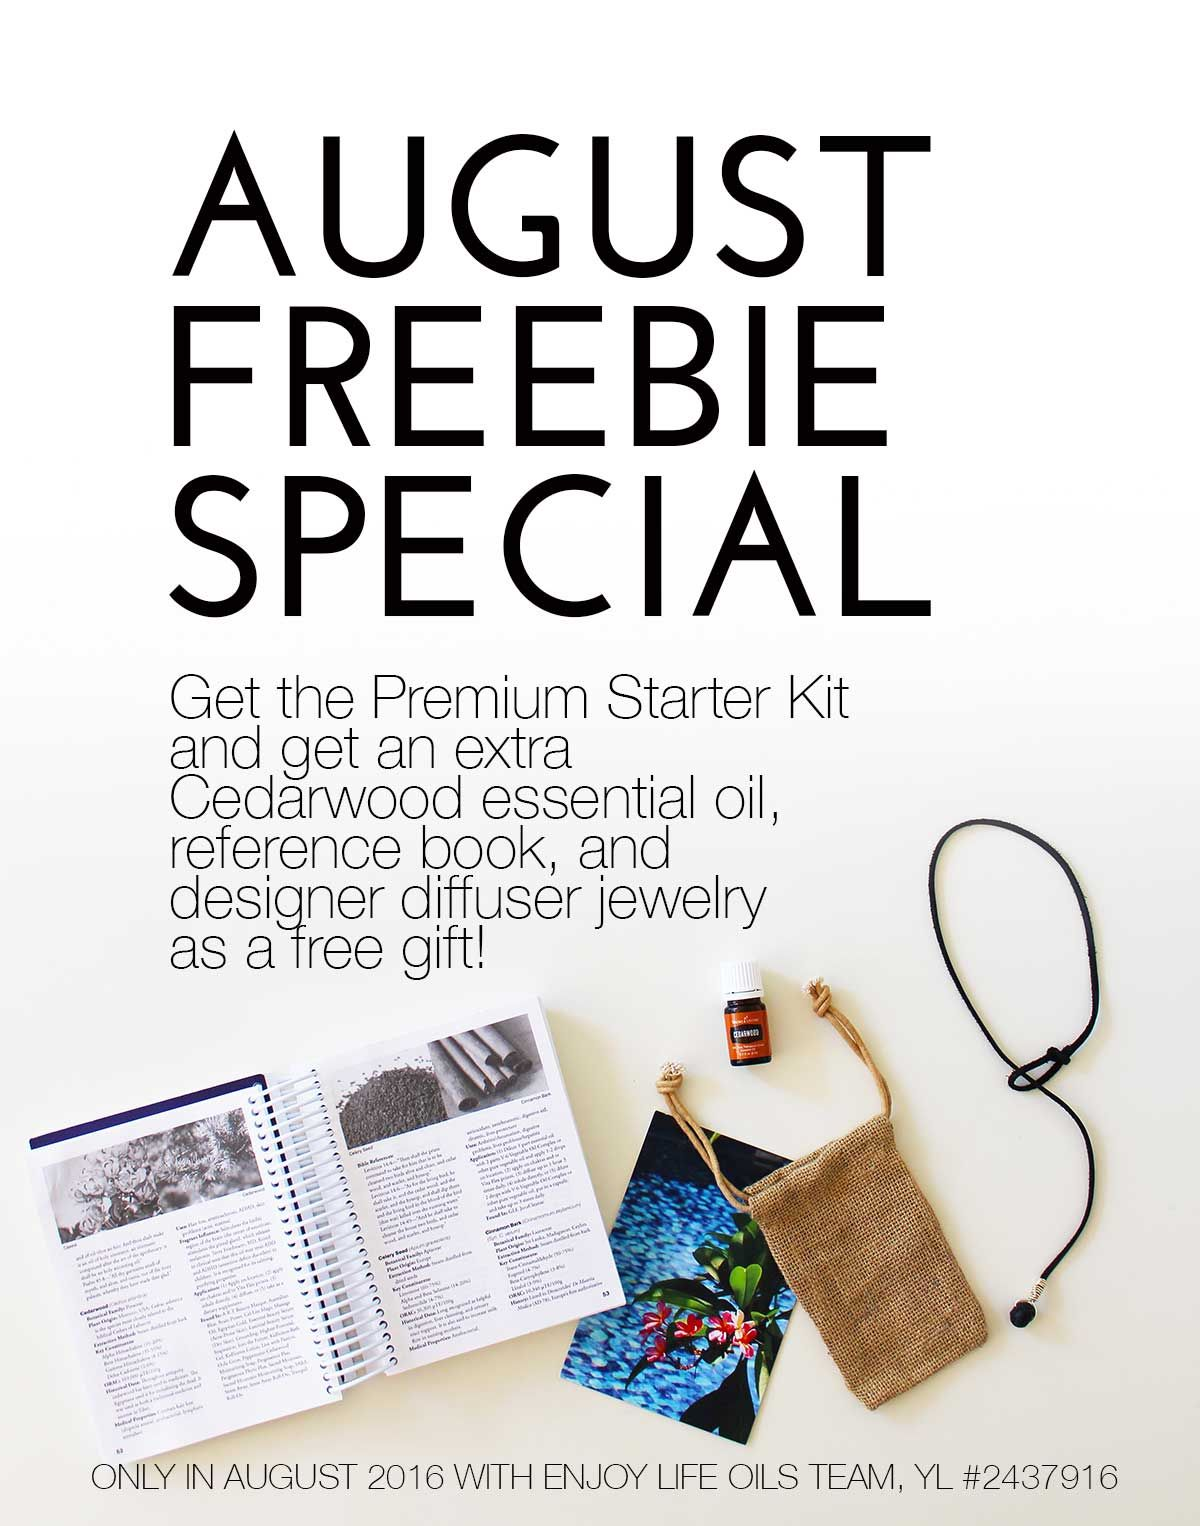 Free gifts when you join young living in august get free reference free gifts when you join young living in august get free reference book cedarwood essential oil and designer diffuser jewelry when you buy the premium negle Image collections